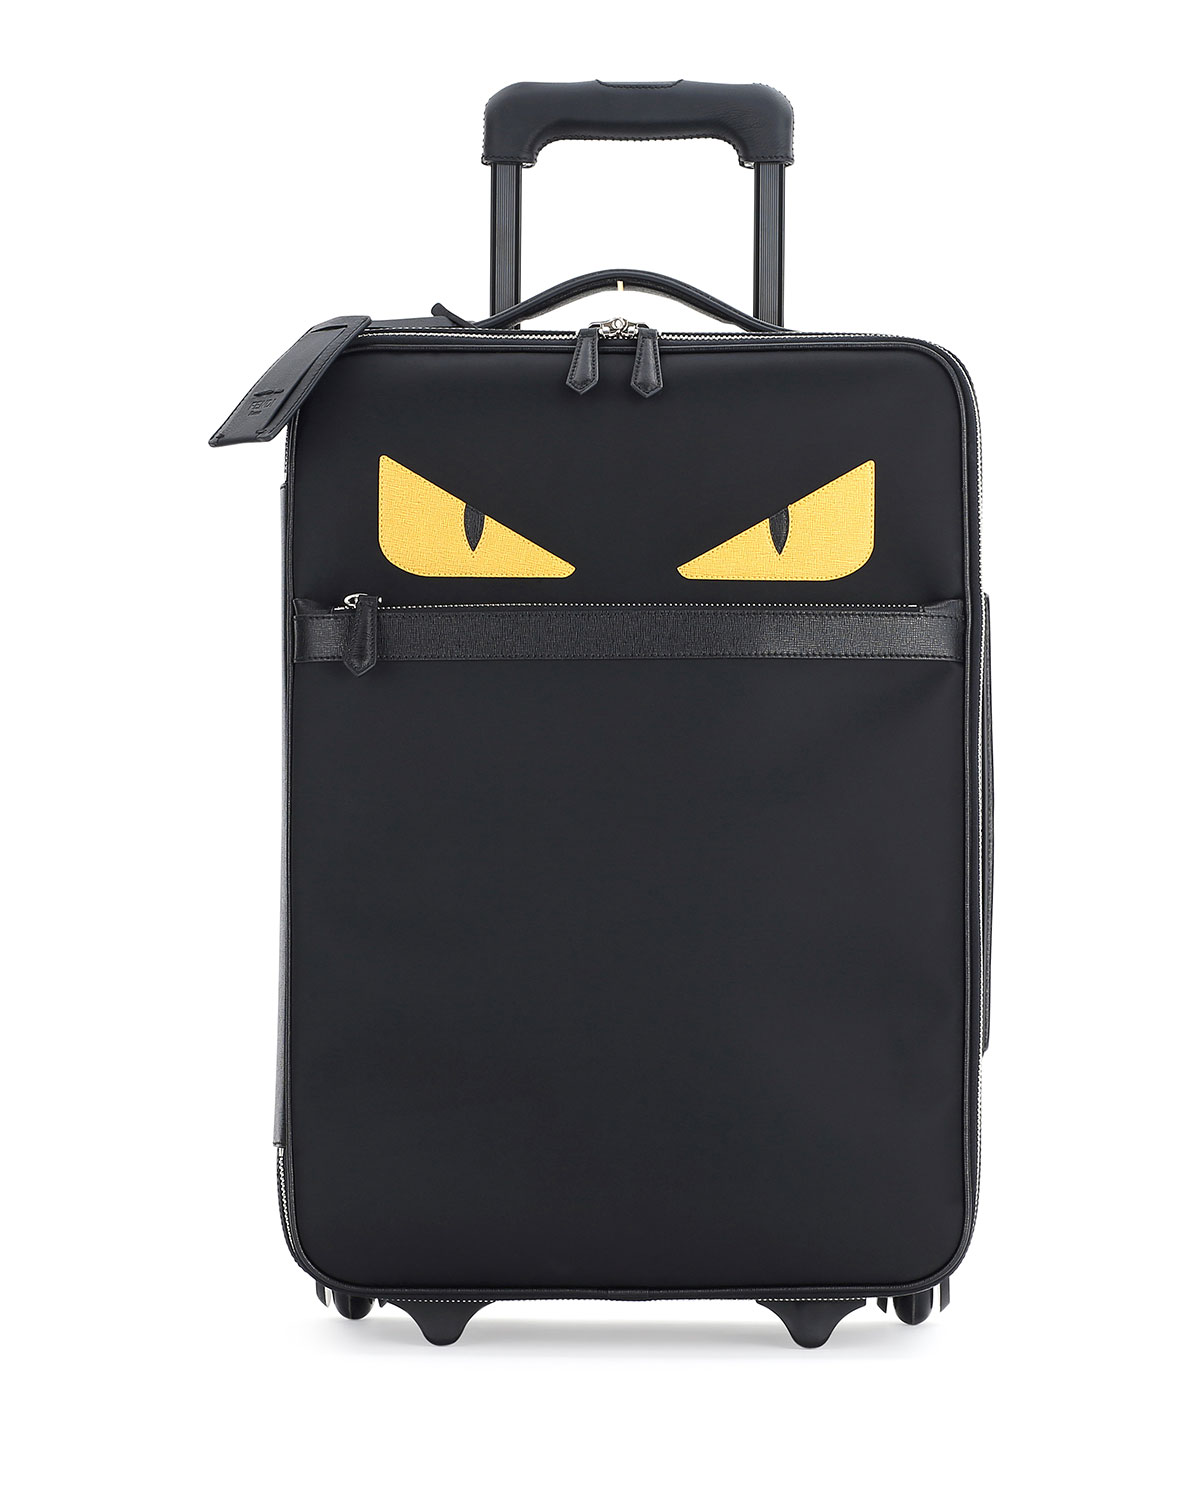 31b279d82b7 Fendi Monster Eyes Canvas & Leather Trolley Suitcase, Black | Neiman ...